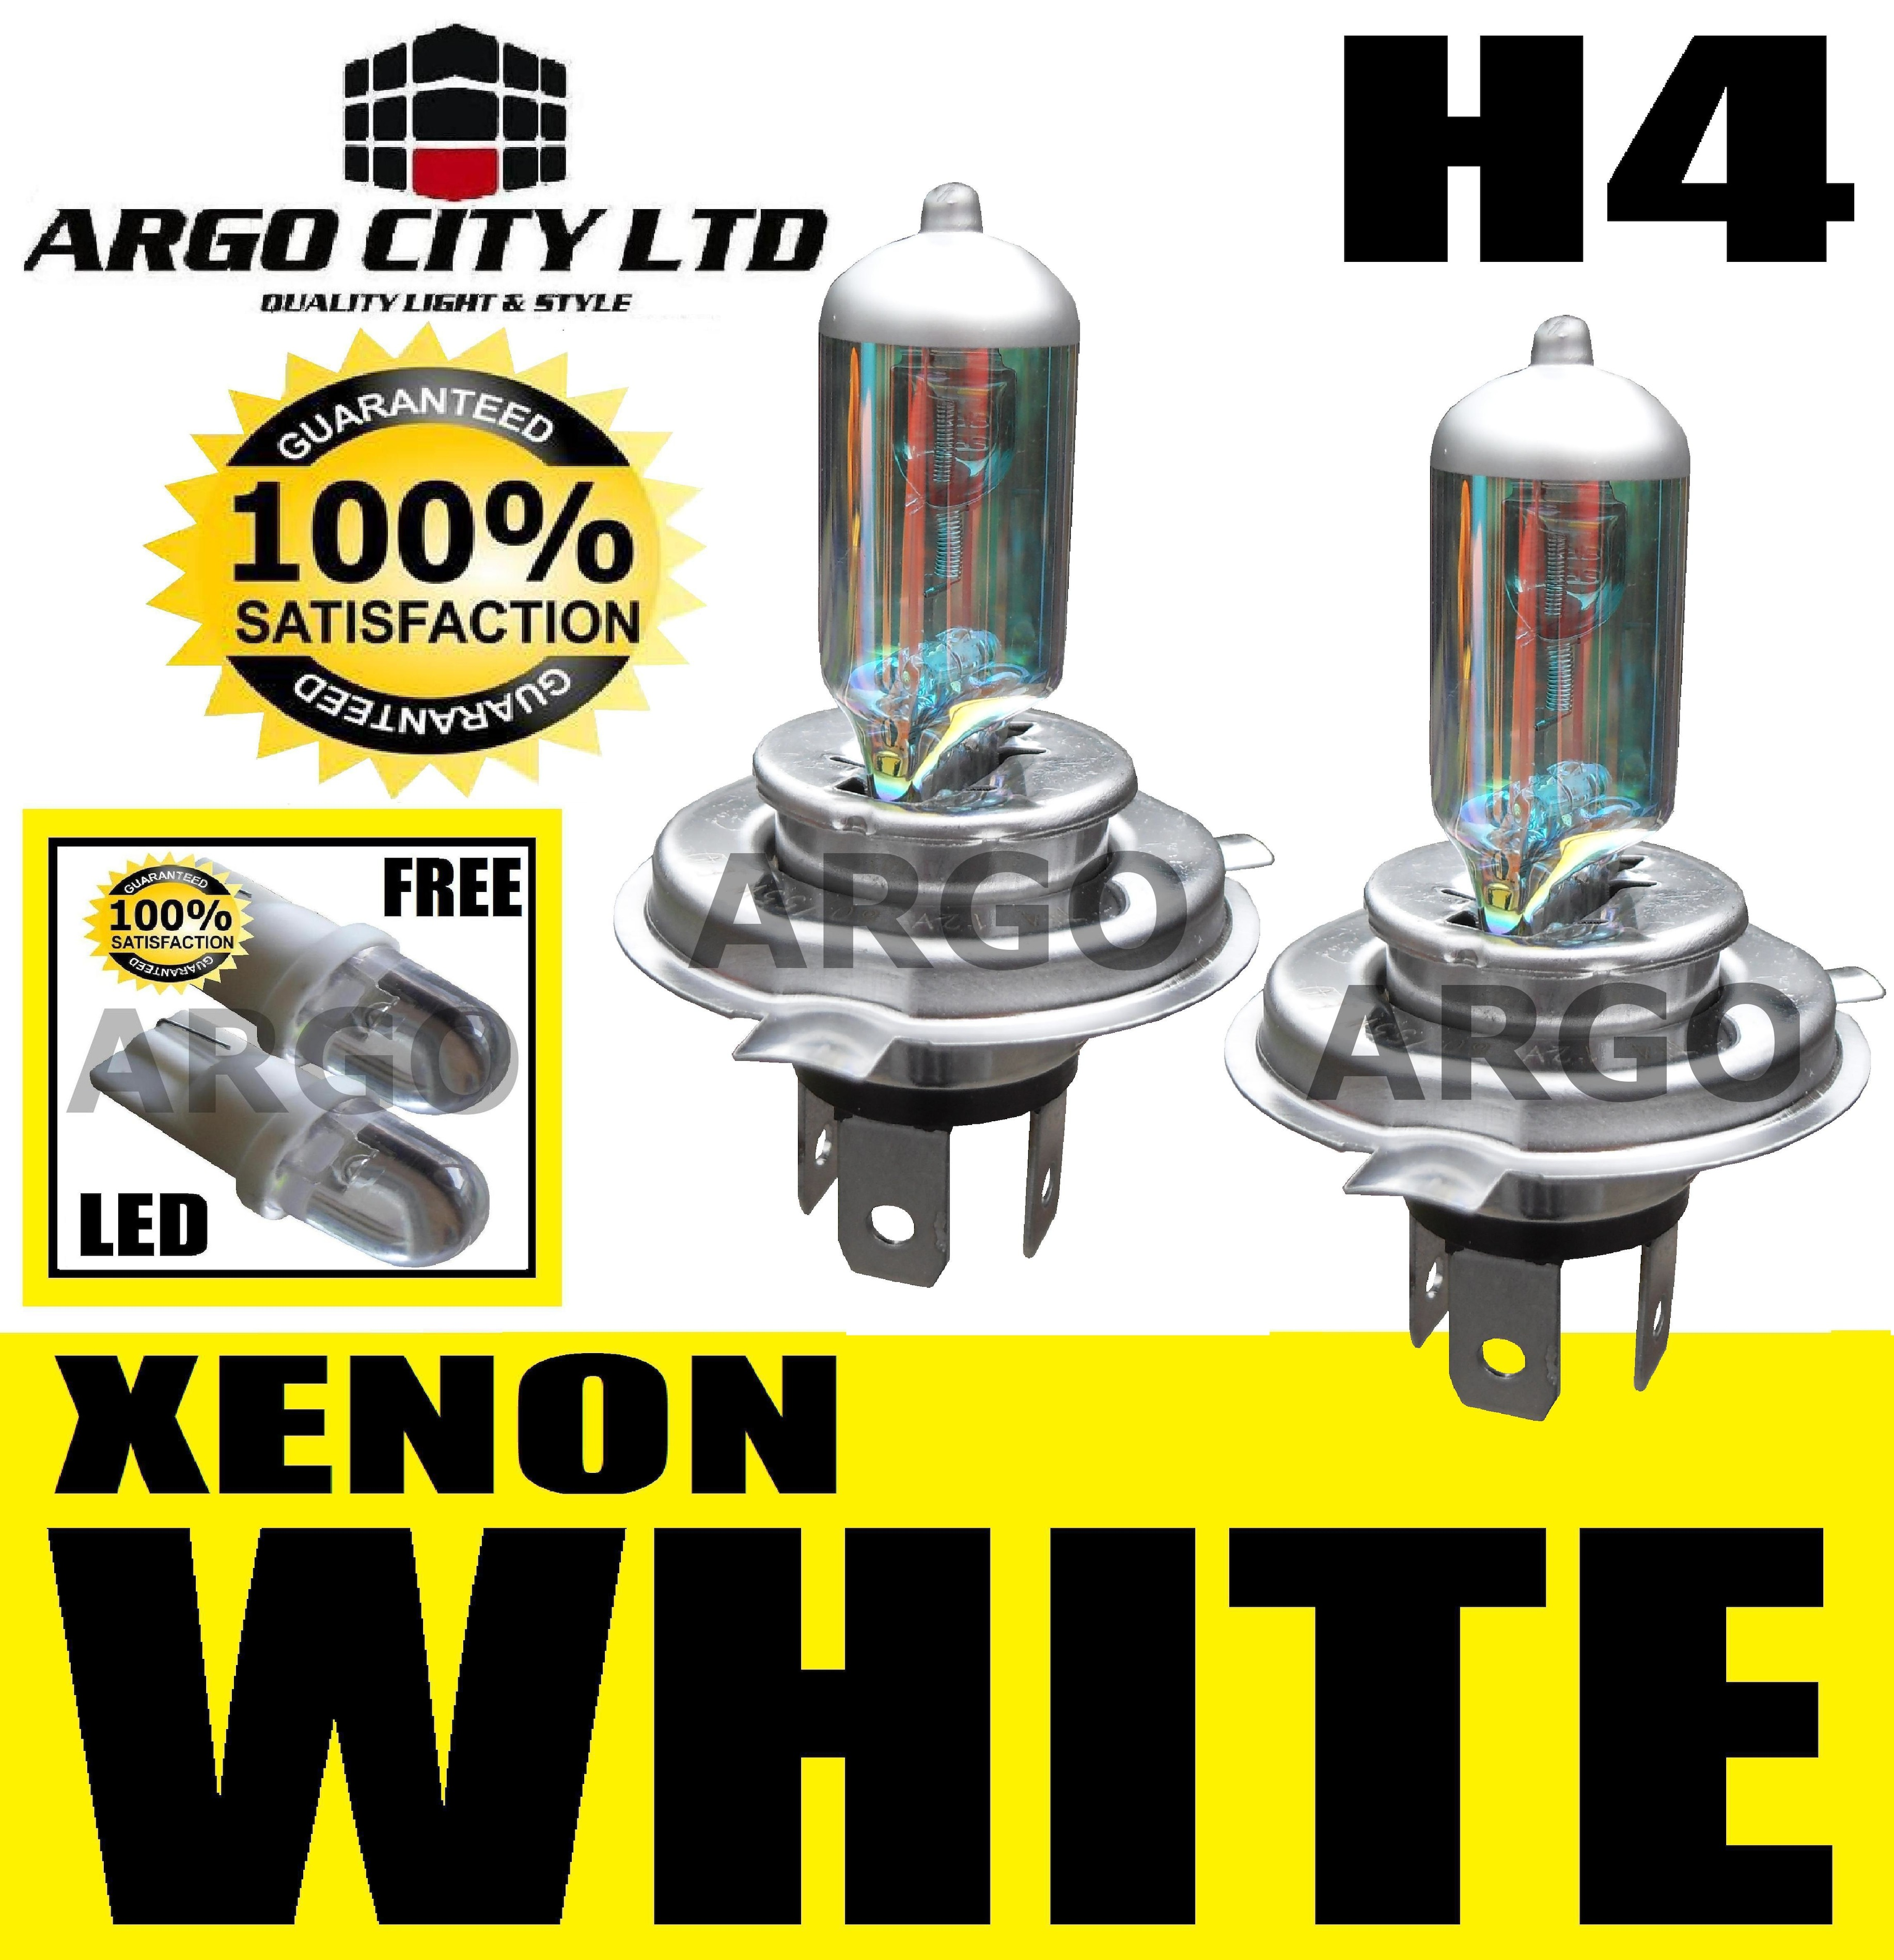 H4 XENON WHITE 472 HEADLIGHT BULBS HARLEY DAVIDSON FLST 1340 Heritage Softail